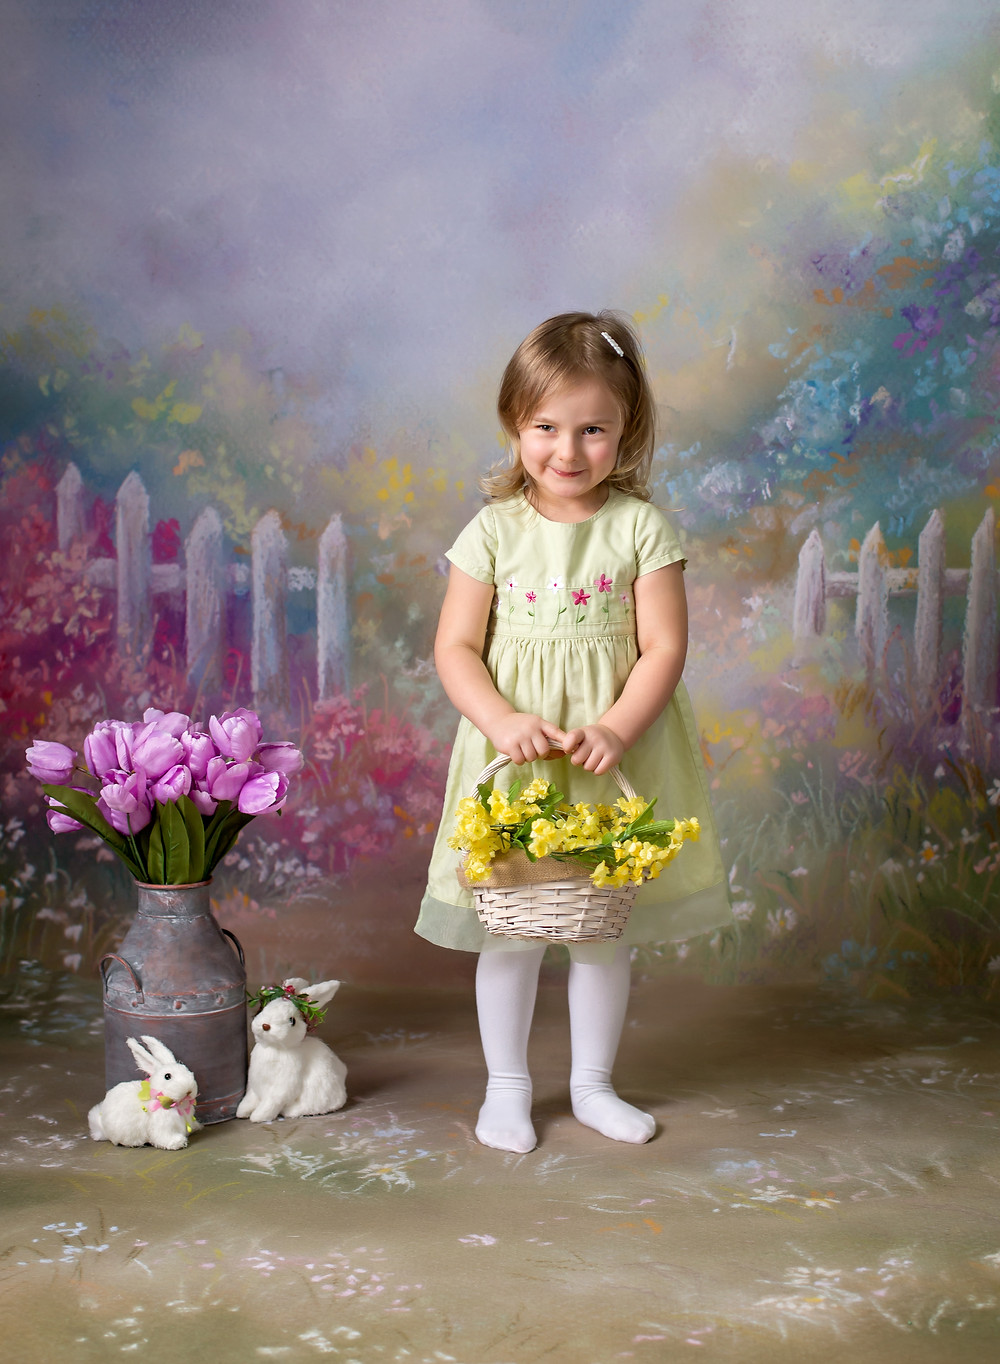 child protraits, Easter